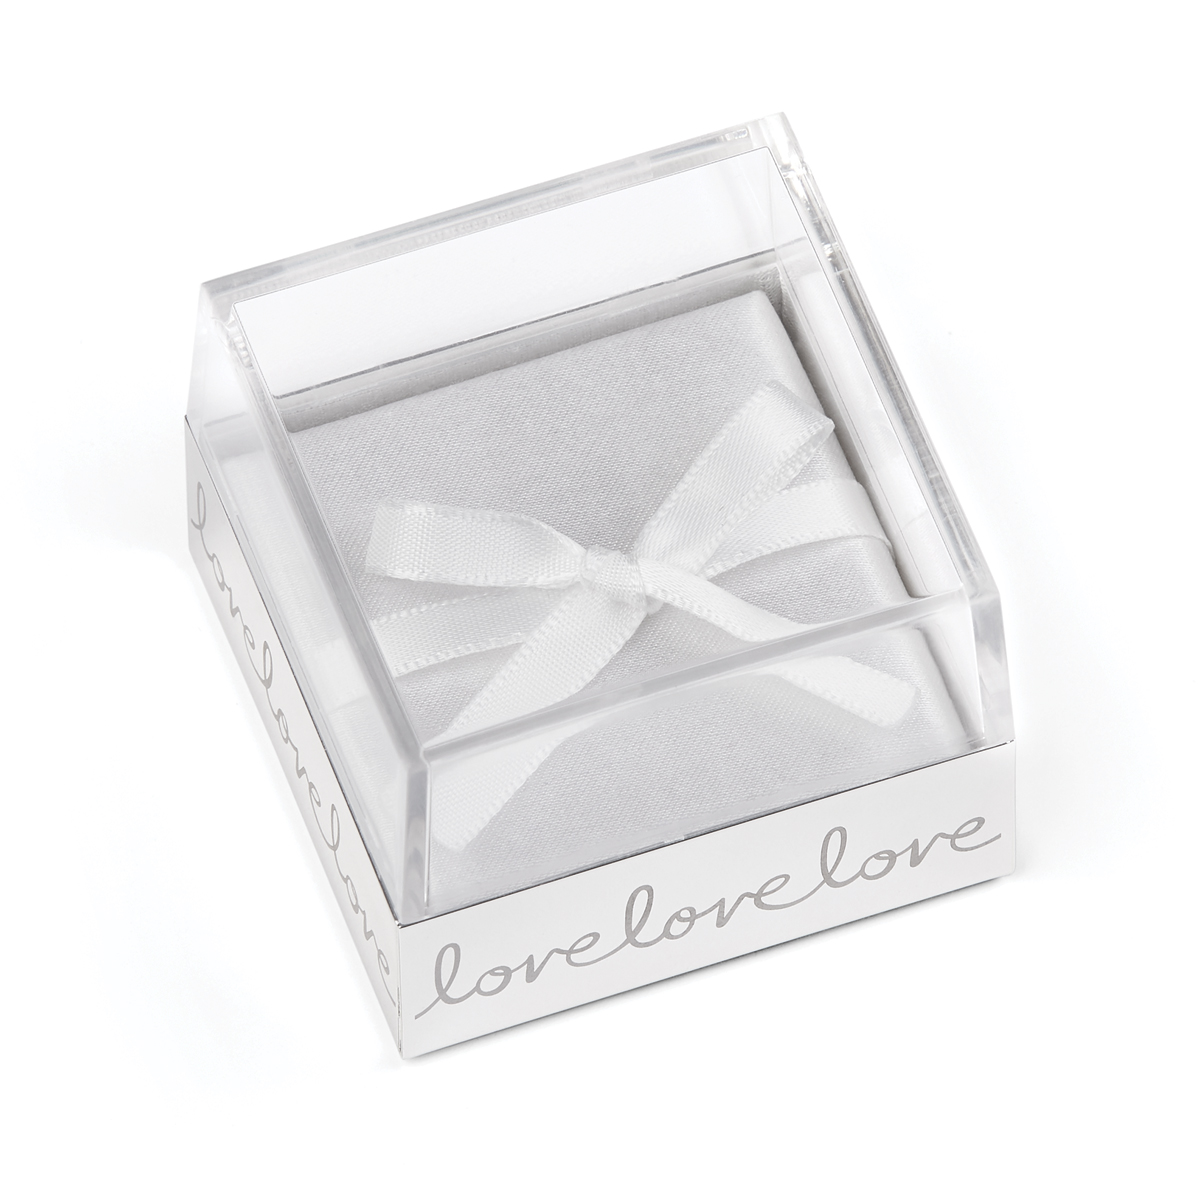 Kate Spade New York, Lenox Key Court Ring Box with Tie